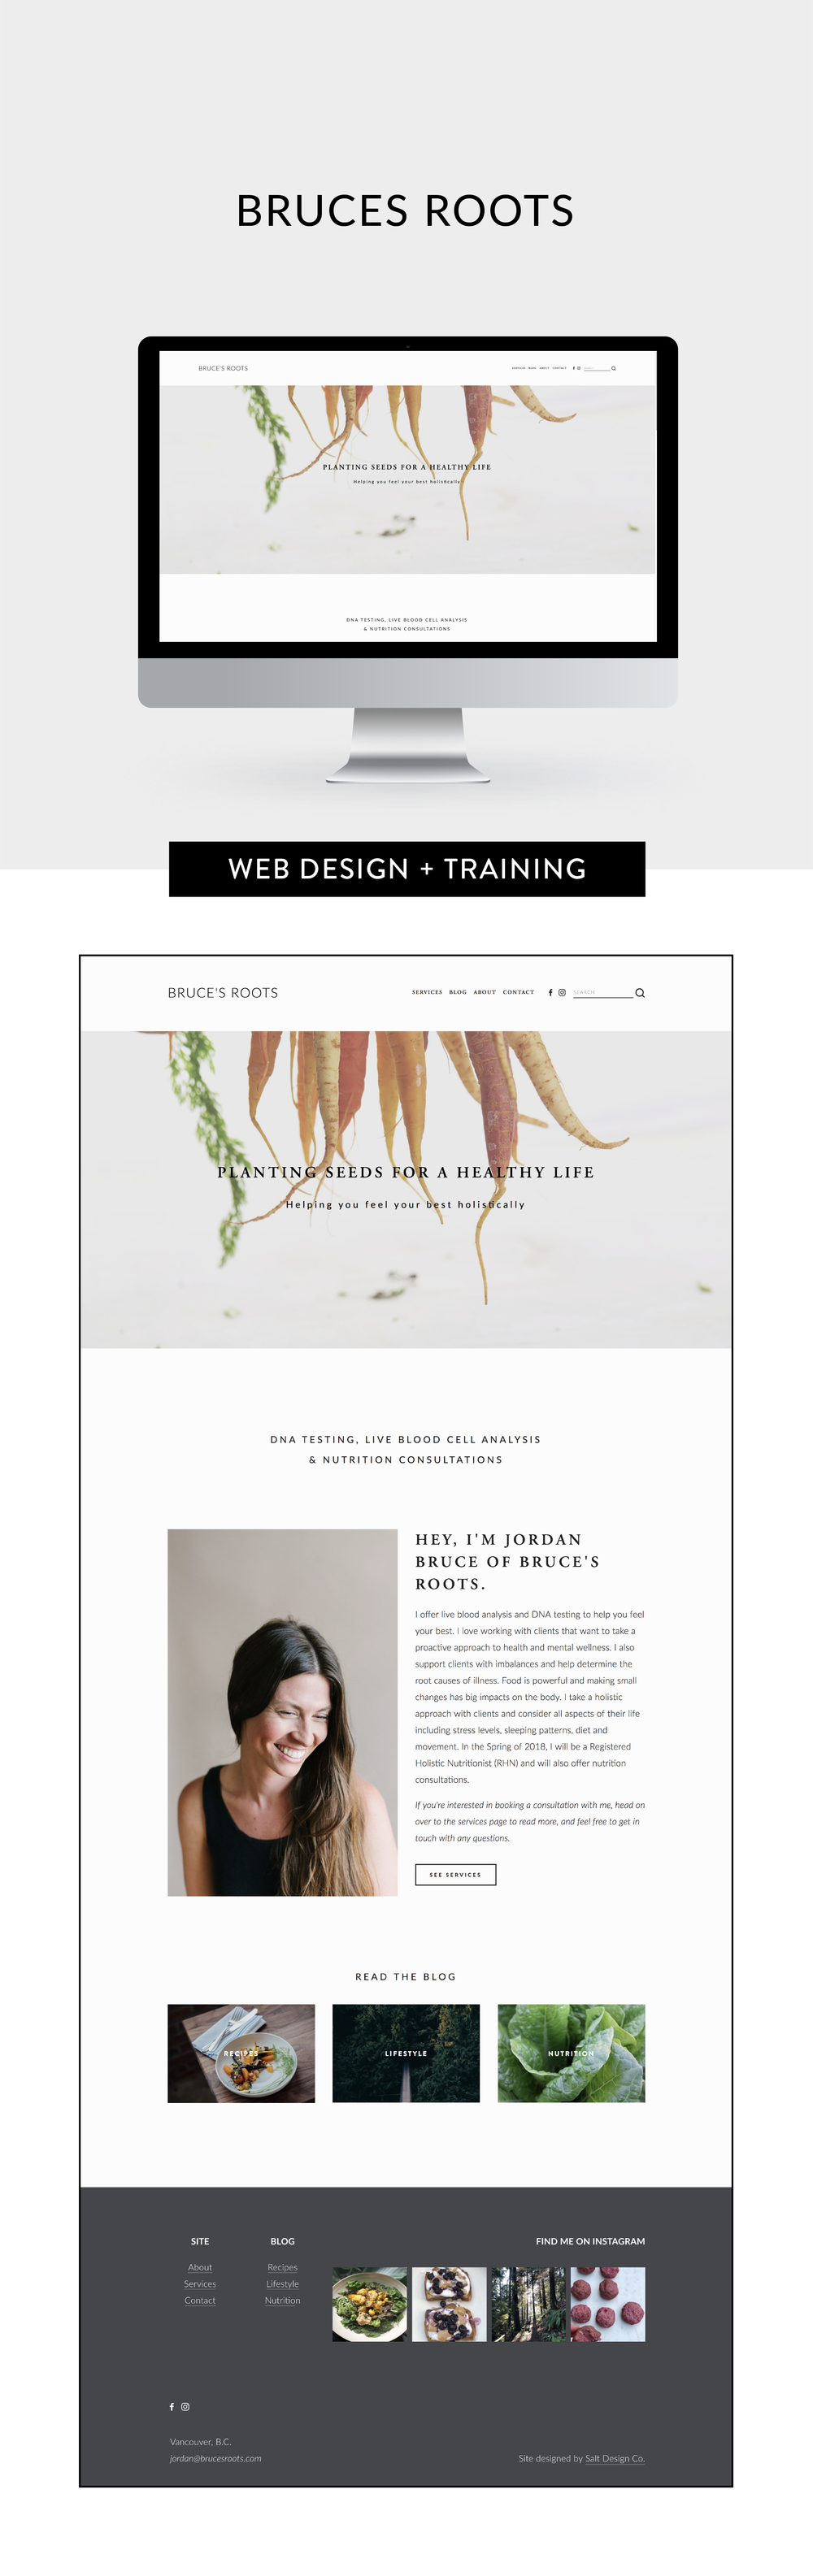 Web design and set up for Bruces Roots by Salt Design Co. in Vancouver BC